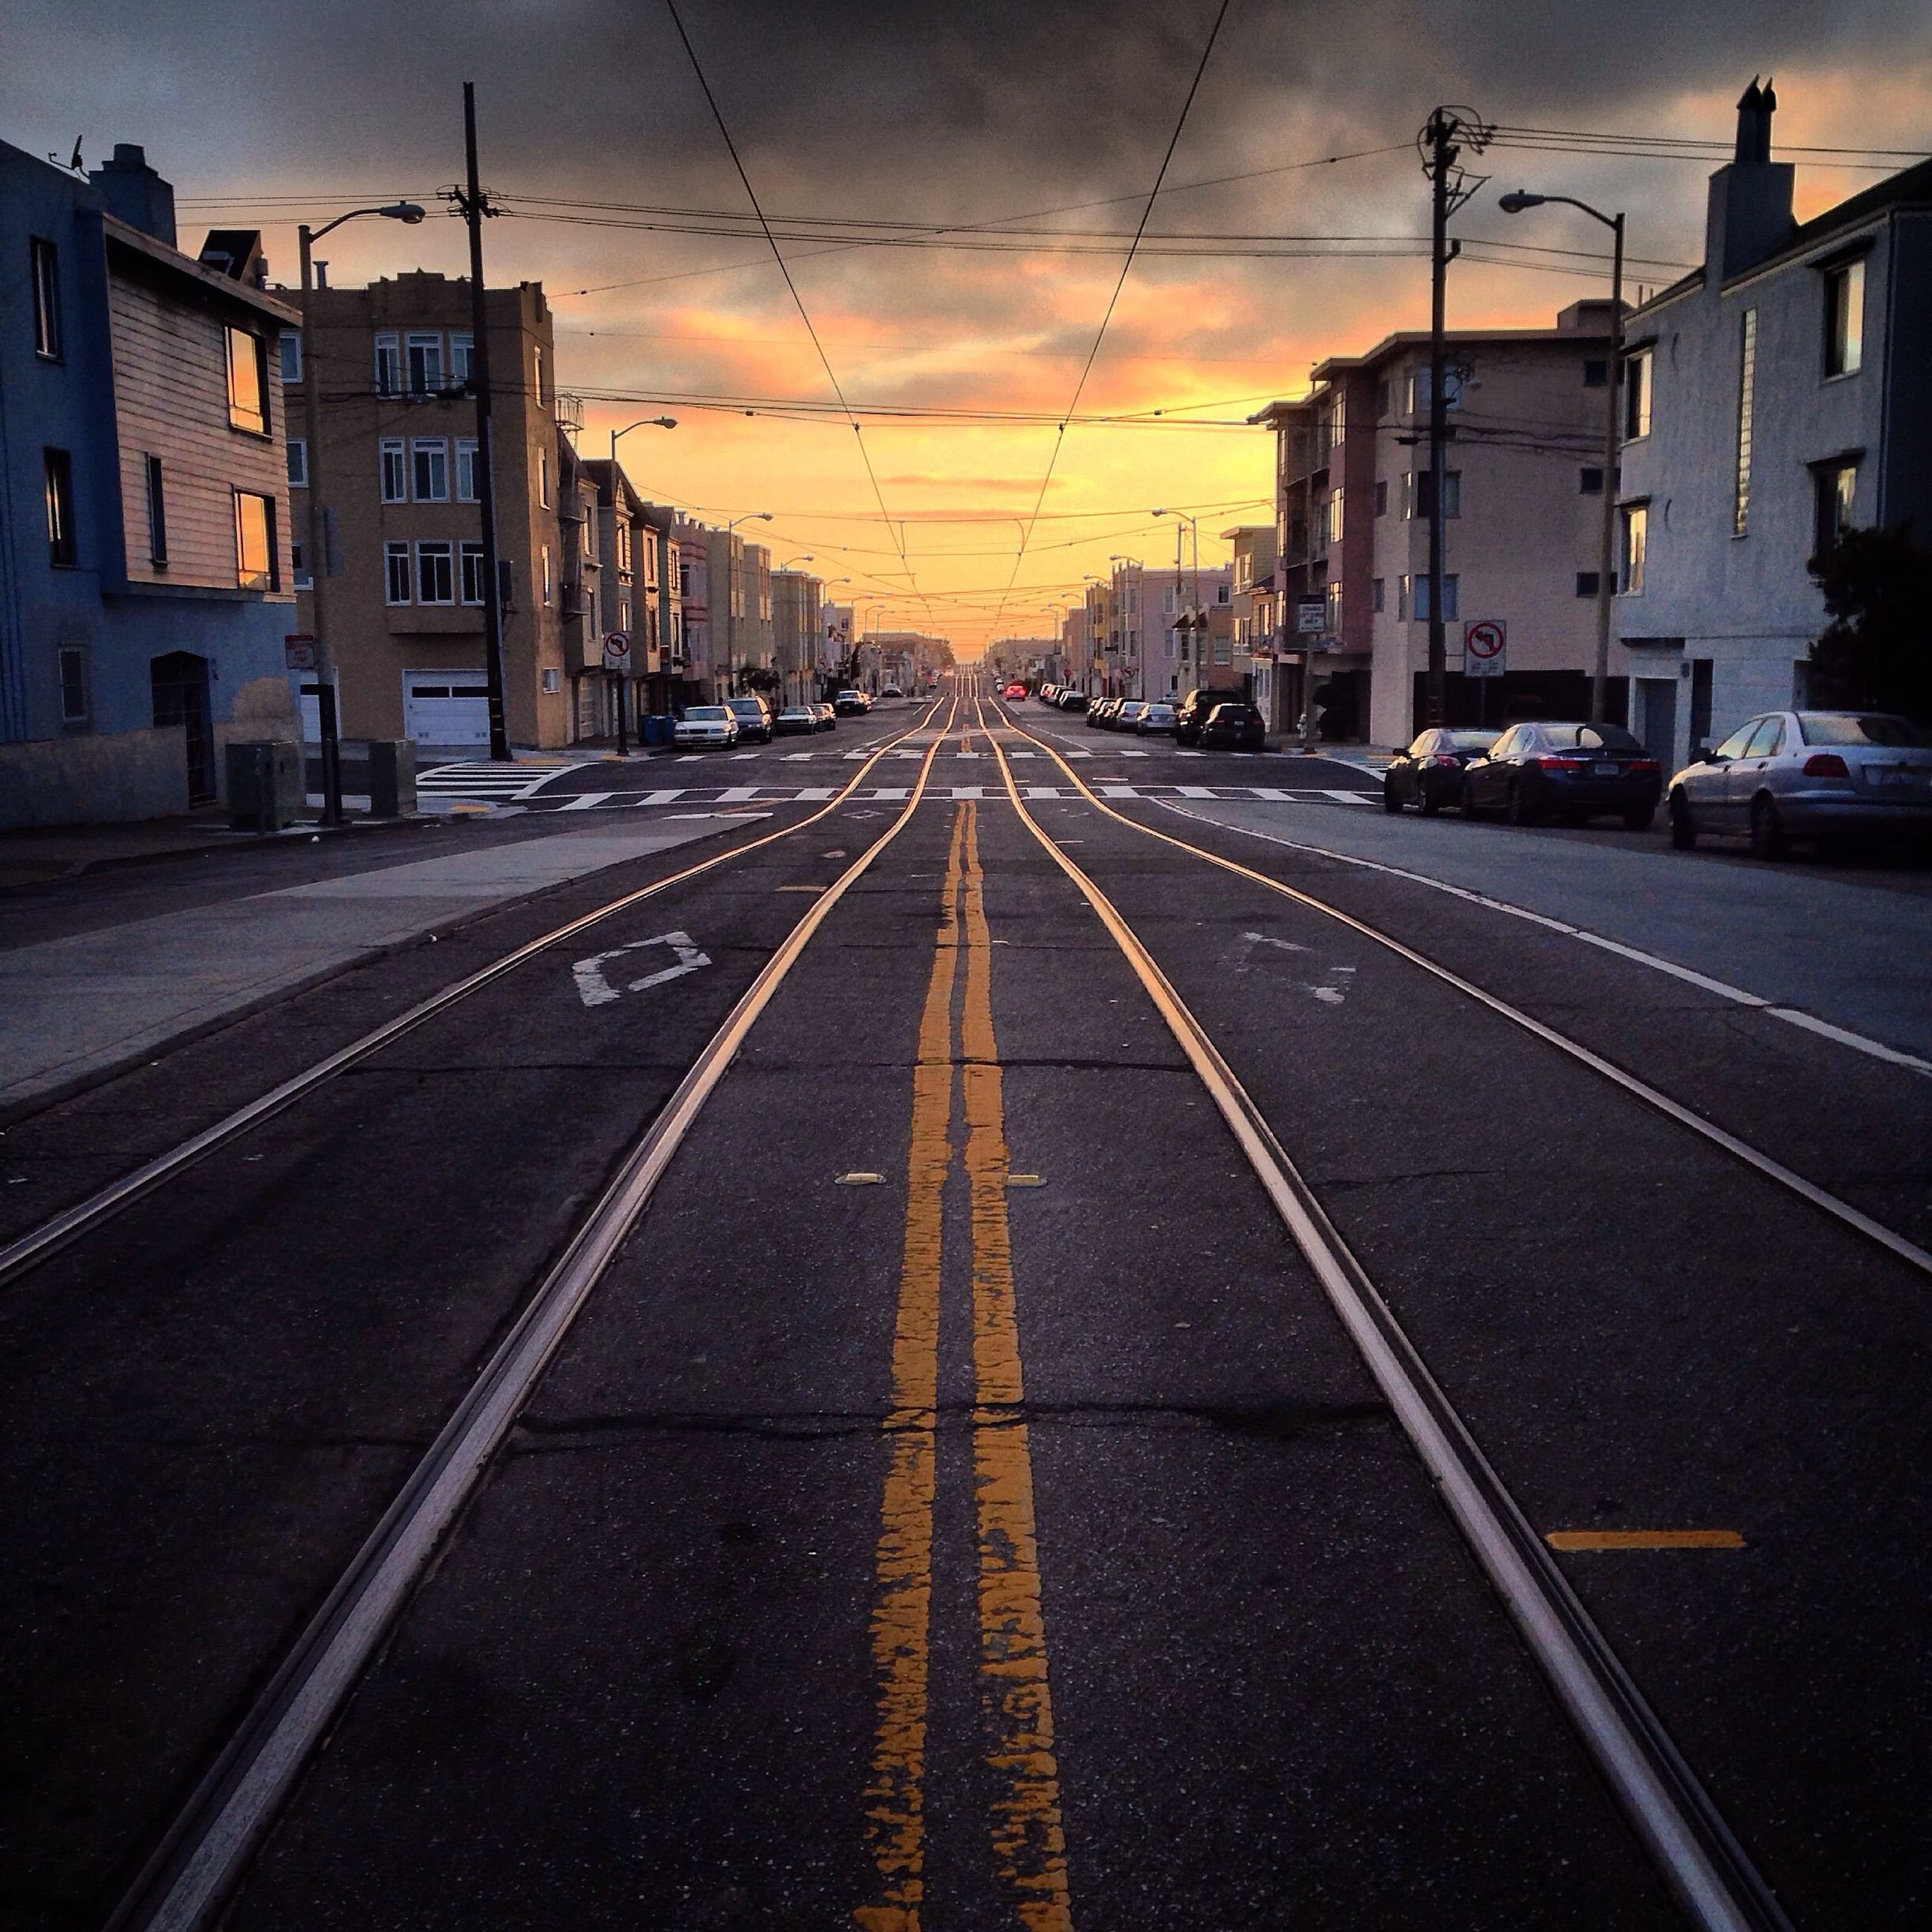 building exterior, transportation, the way forward, architecture, built structure, diminishing perspective, city, sunset, road marking, vanishing point, street, sky, road, asphalt, city life, railroad track, surface level, tramway, outdoors, dusk